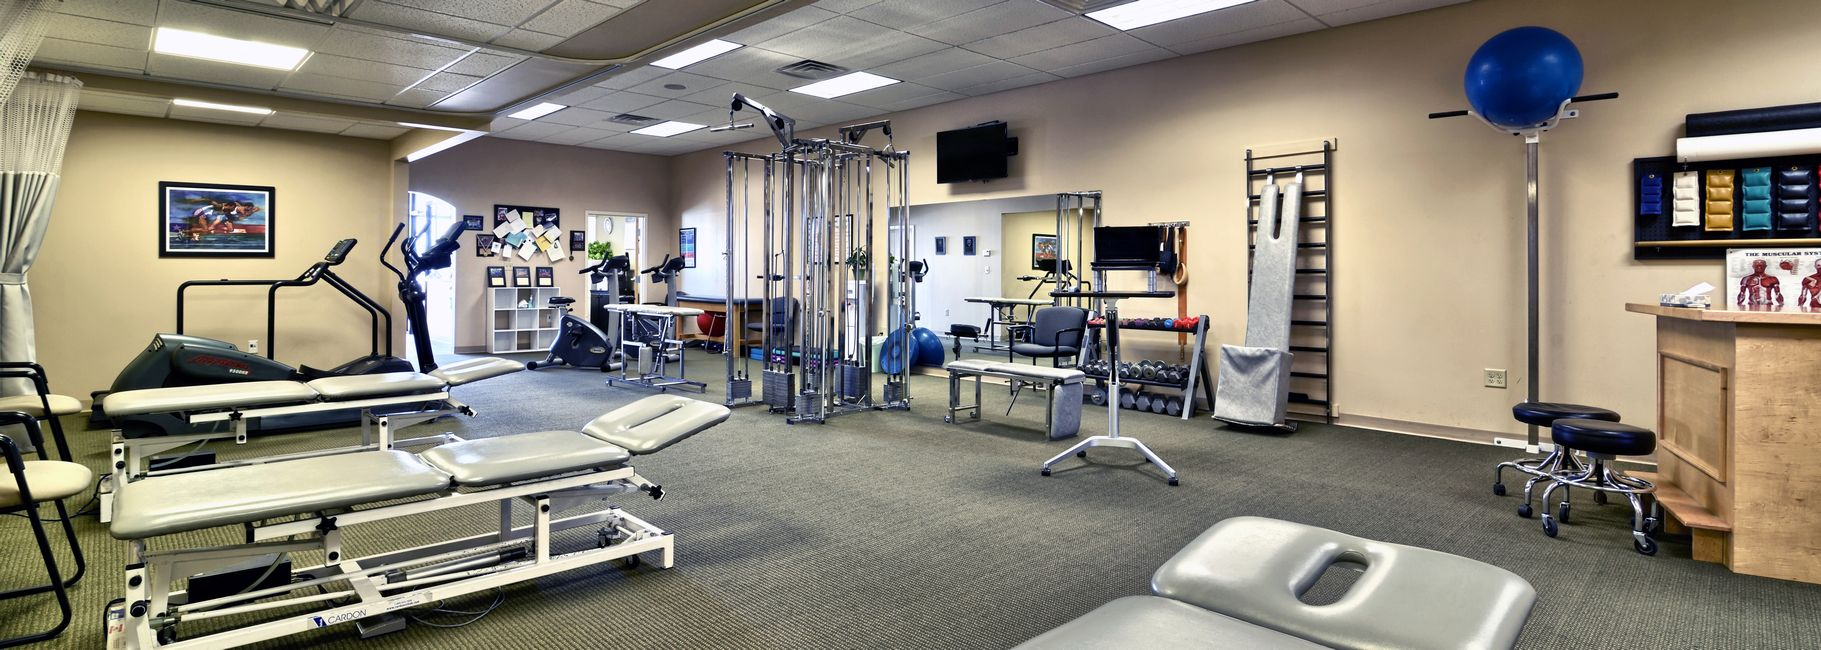 Interior of our Epping, NH physical therapy and sports medicine clinic located in the Eppicenter off exit 7 on 101.